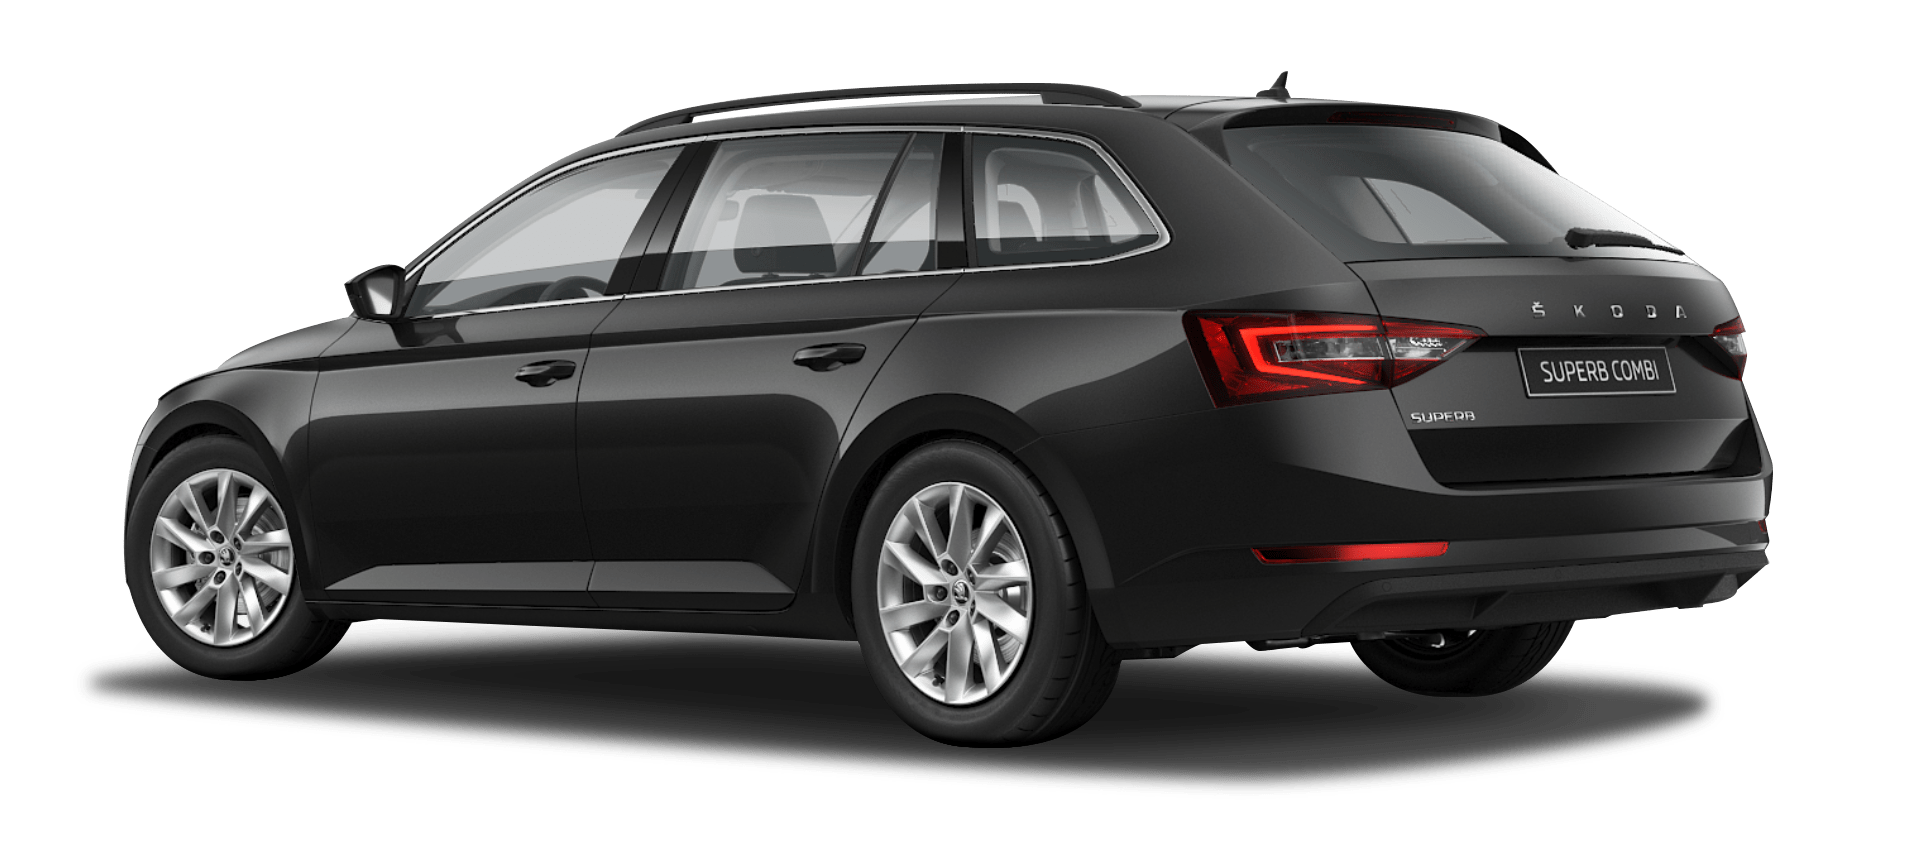 Skoda Superb COMBI Ambition 1,4 TSI iV 160kW